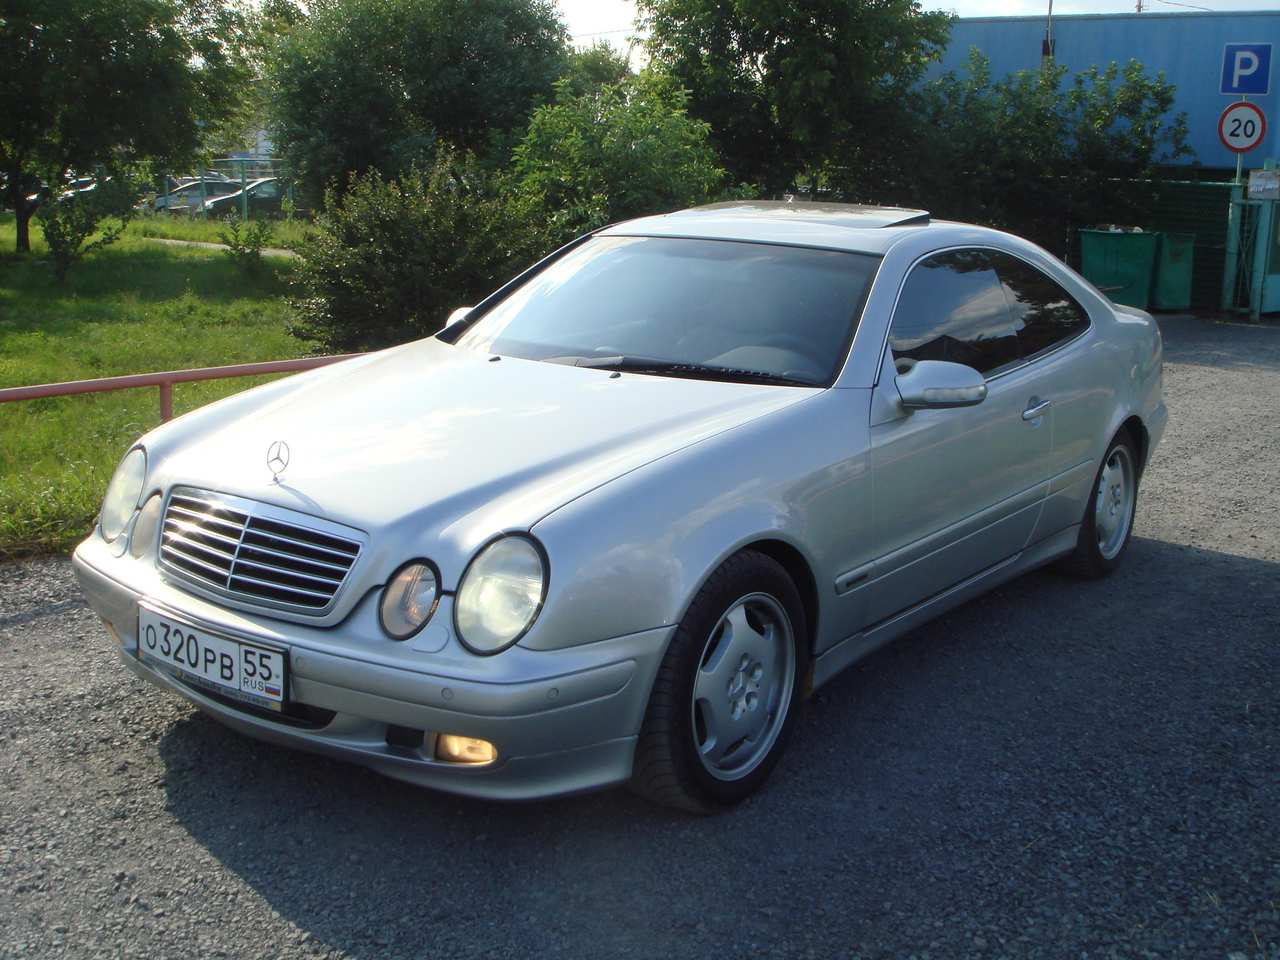 used 2000 mercedes benz clk class photos 3200cc gasoline fr or rr automatic for sale. Black Bedroom Furniture Sets. Home Design Ideas